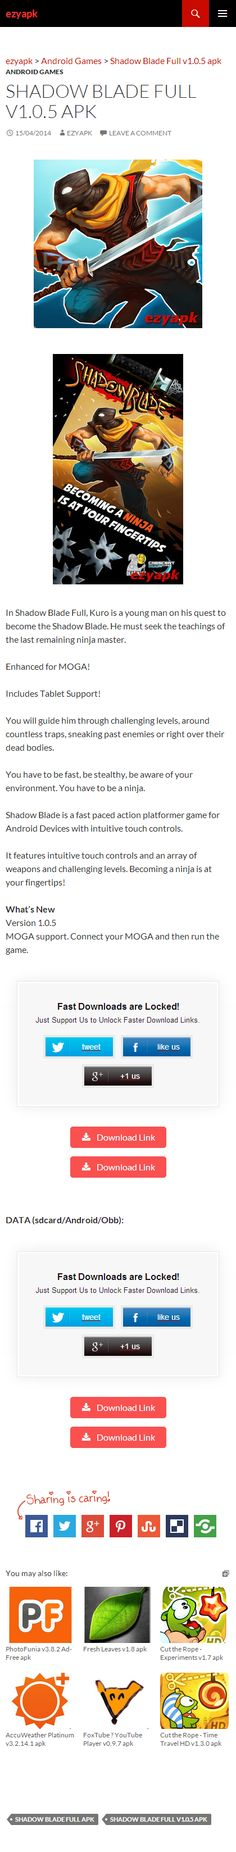 Android Games Shadow Blade Full v1.0.5 apk - ezyapk In Shadow Blade Full, Kuro is a young man on his quest to become the Shadow Blade. He must seek the teachings of the last remaining ninja master. http://www.ezyapk.com/android-games/shadow-blade-full-v1-0-5-apk/